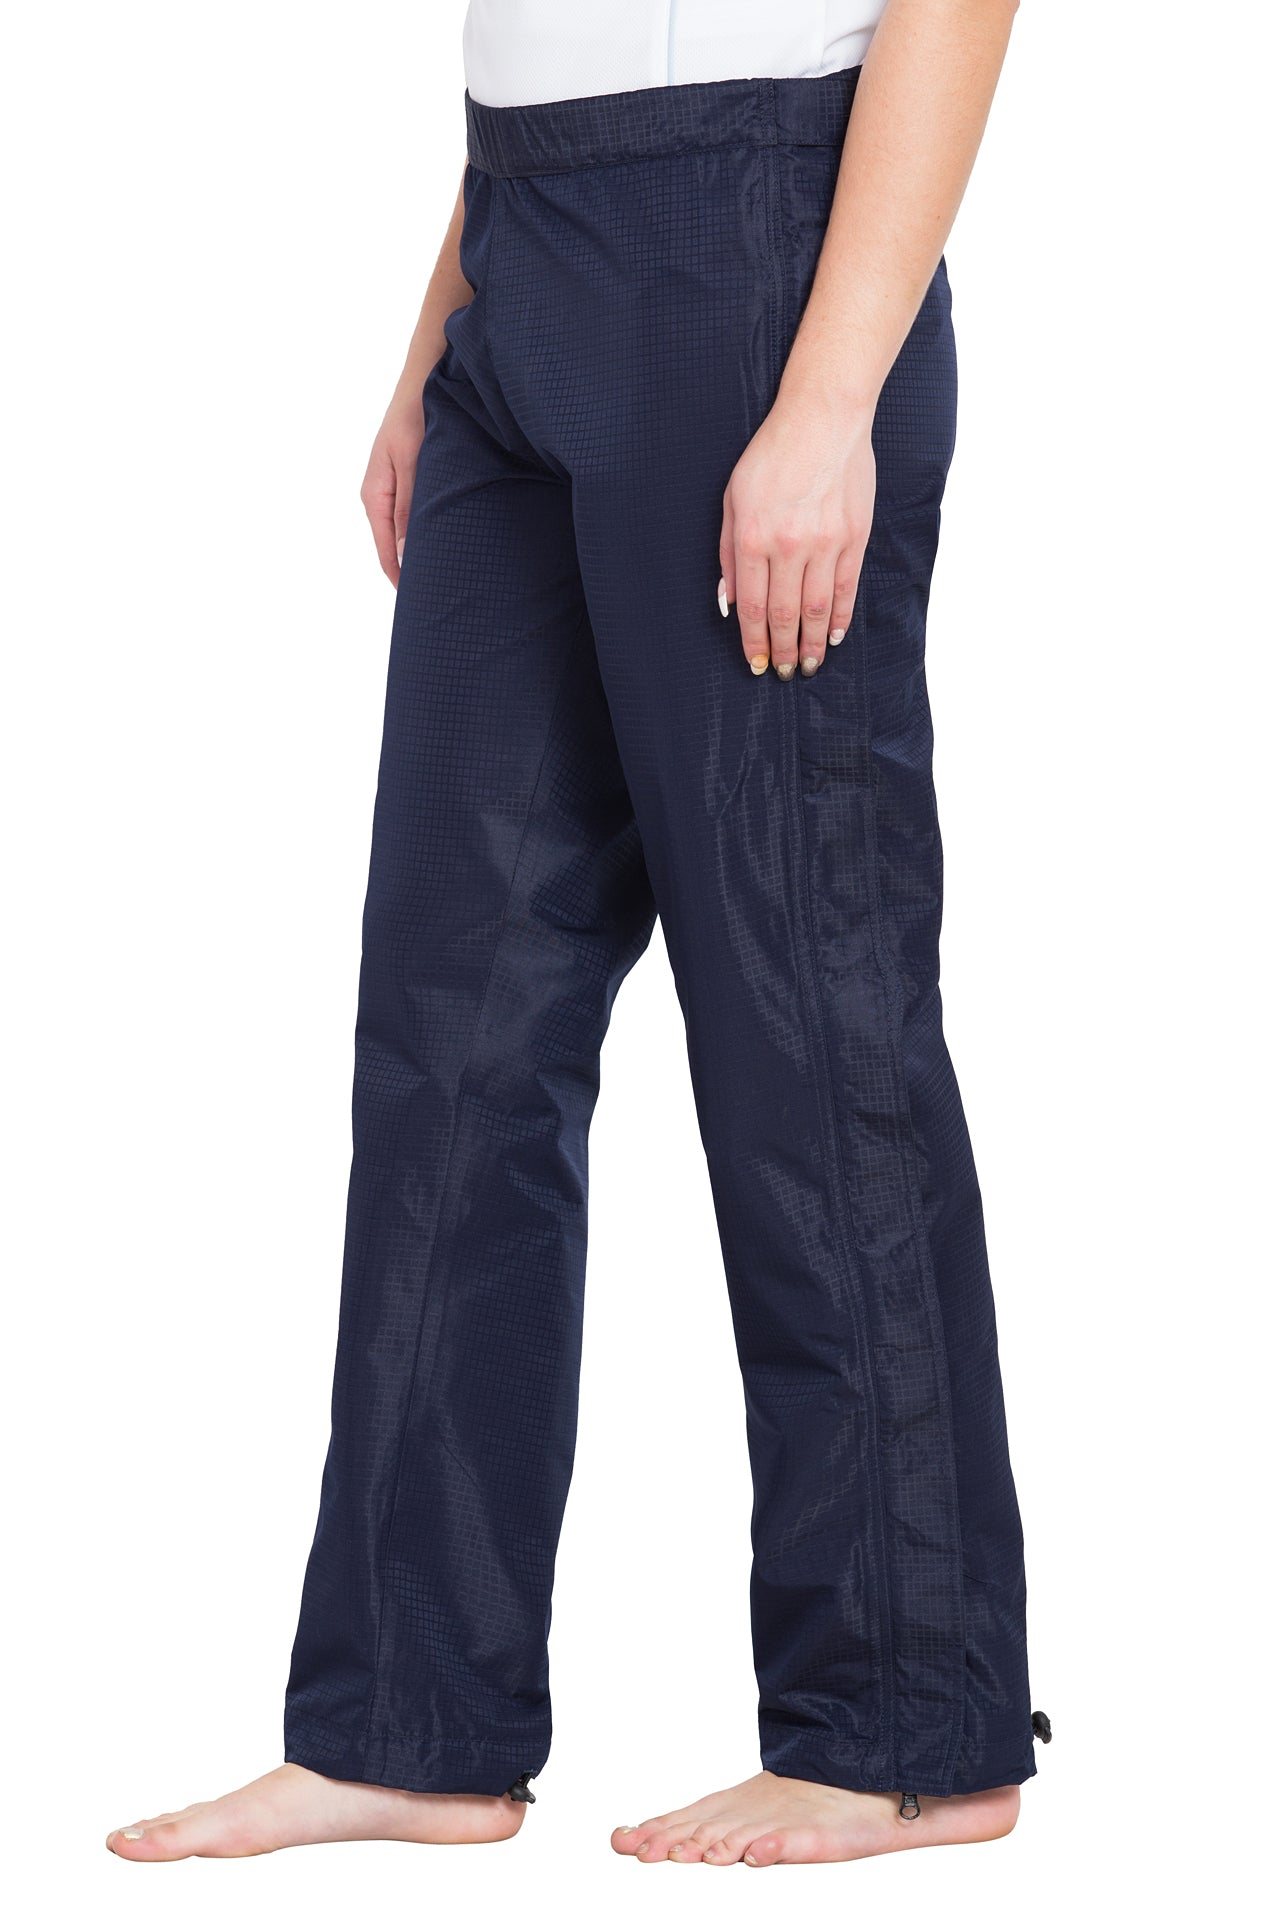 Equine Couture Ladies Spinnaker Rain Shell Pant_1